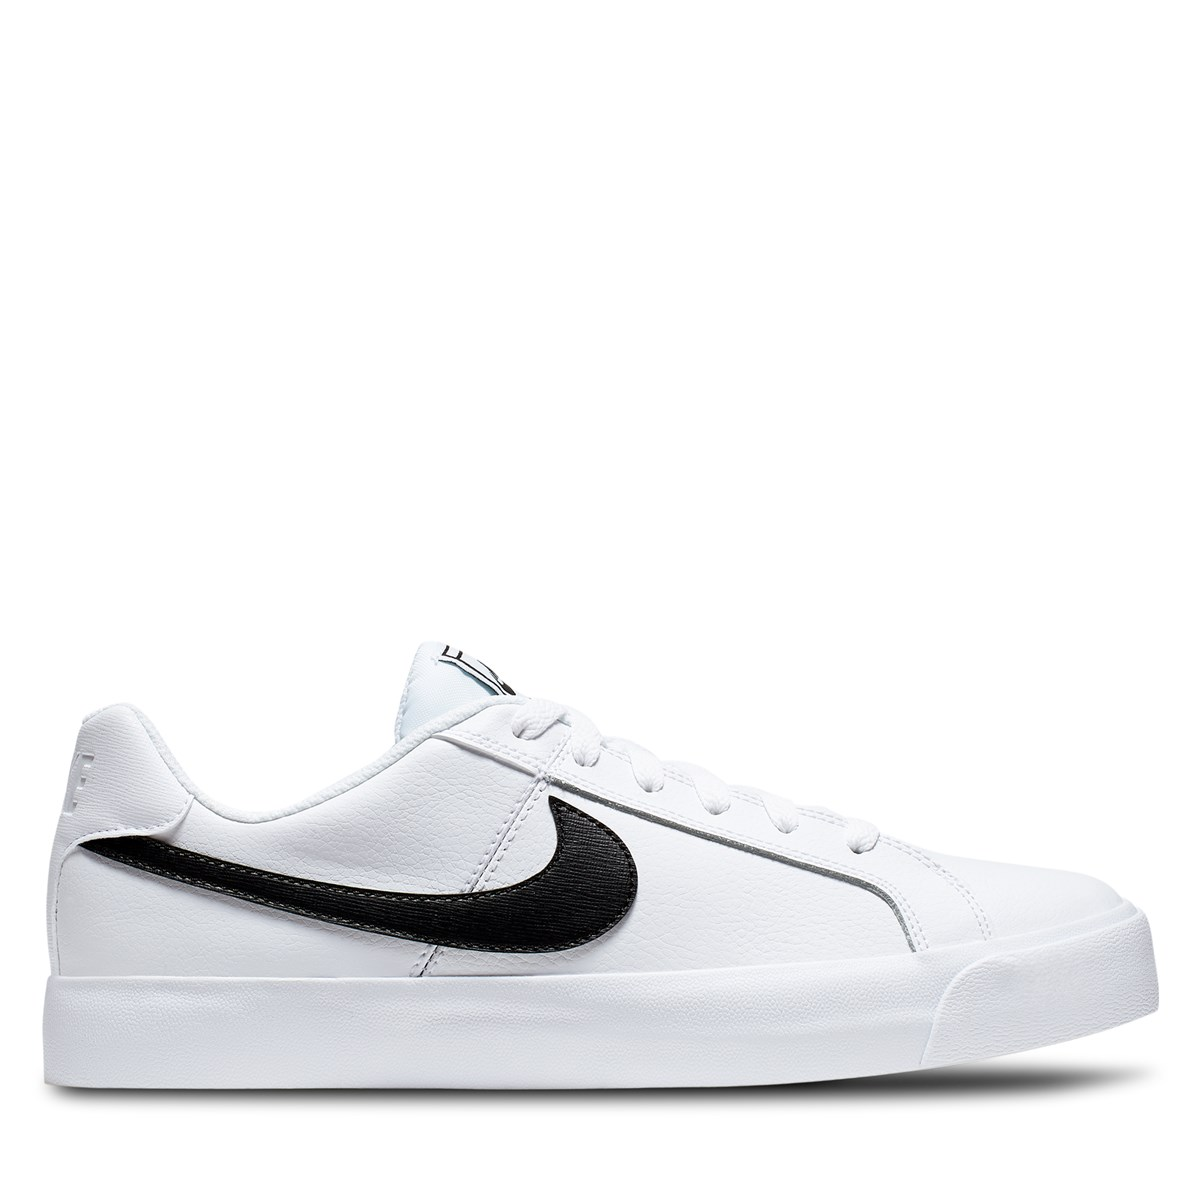 Men's Court Royal Sneakers in White